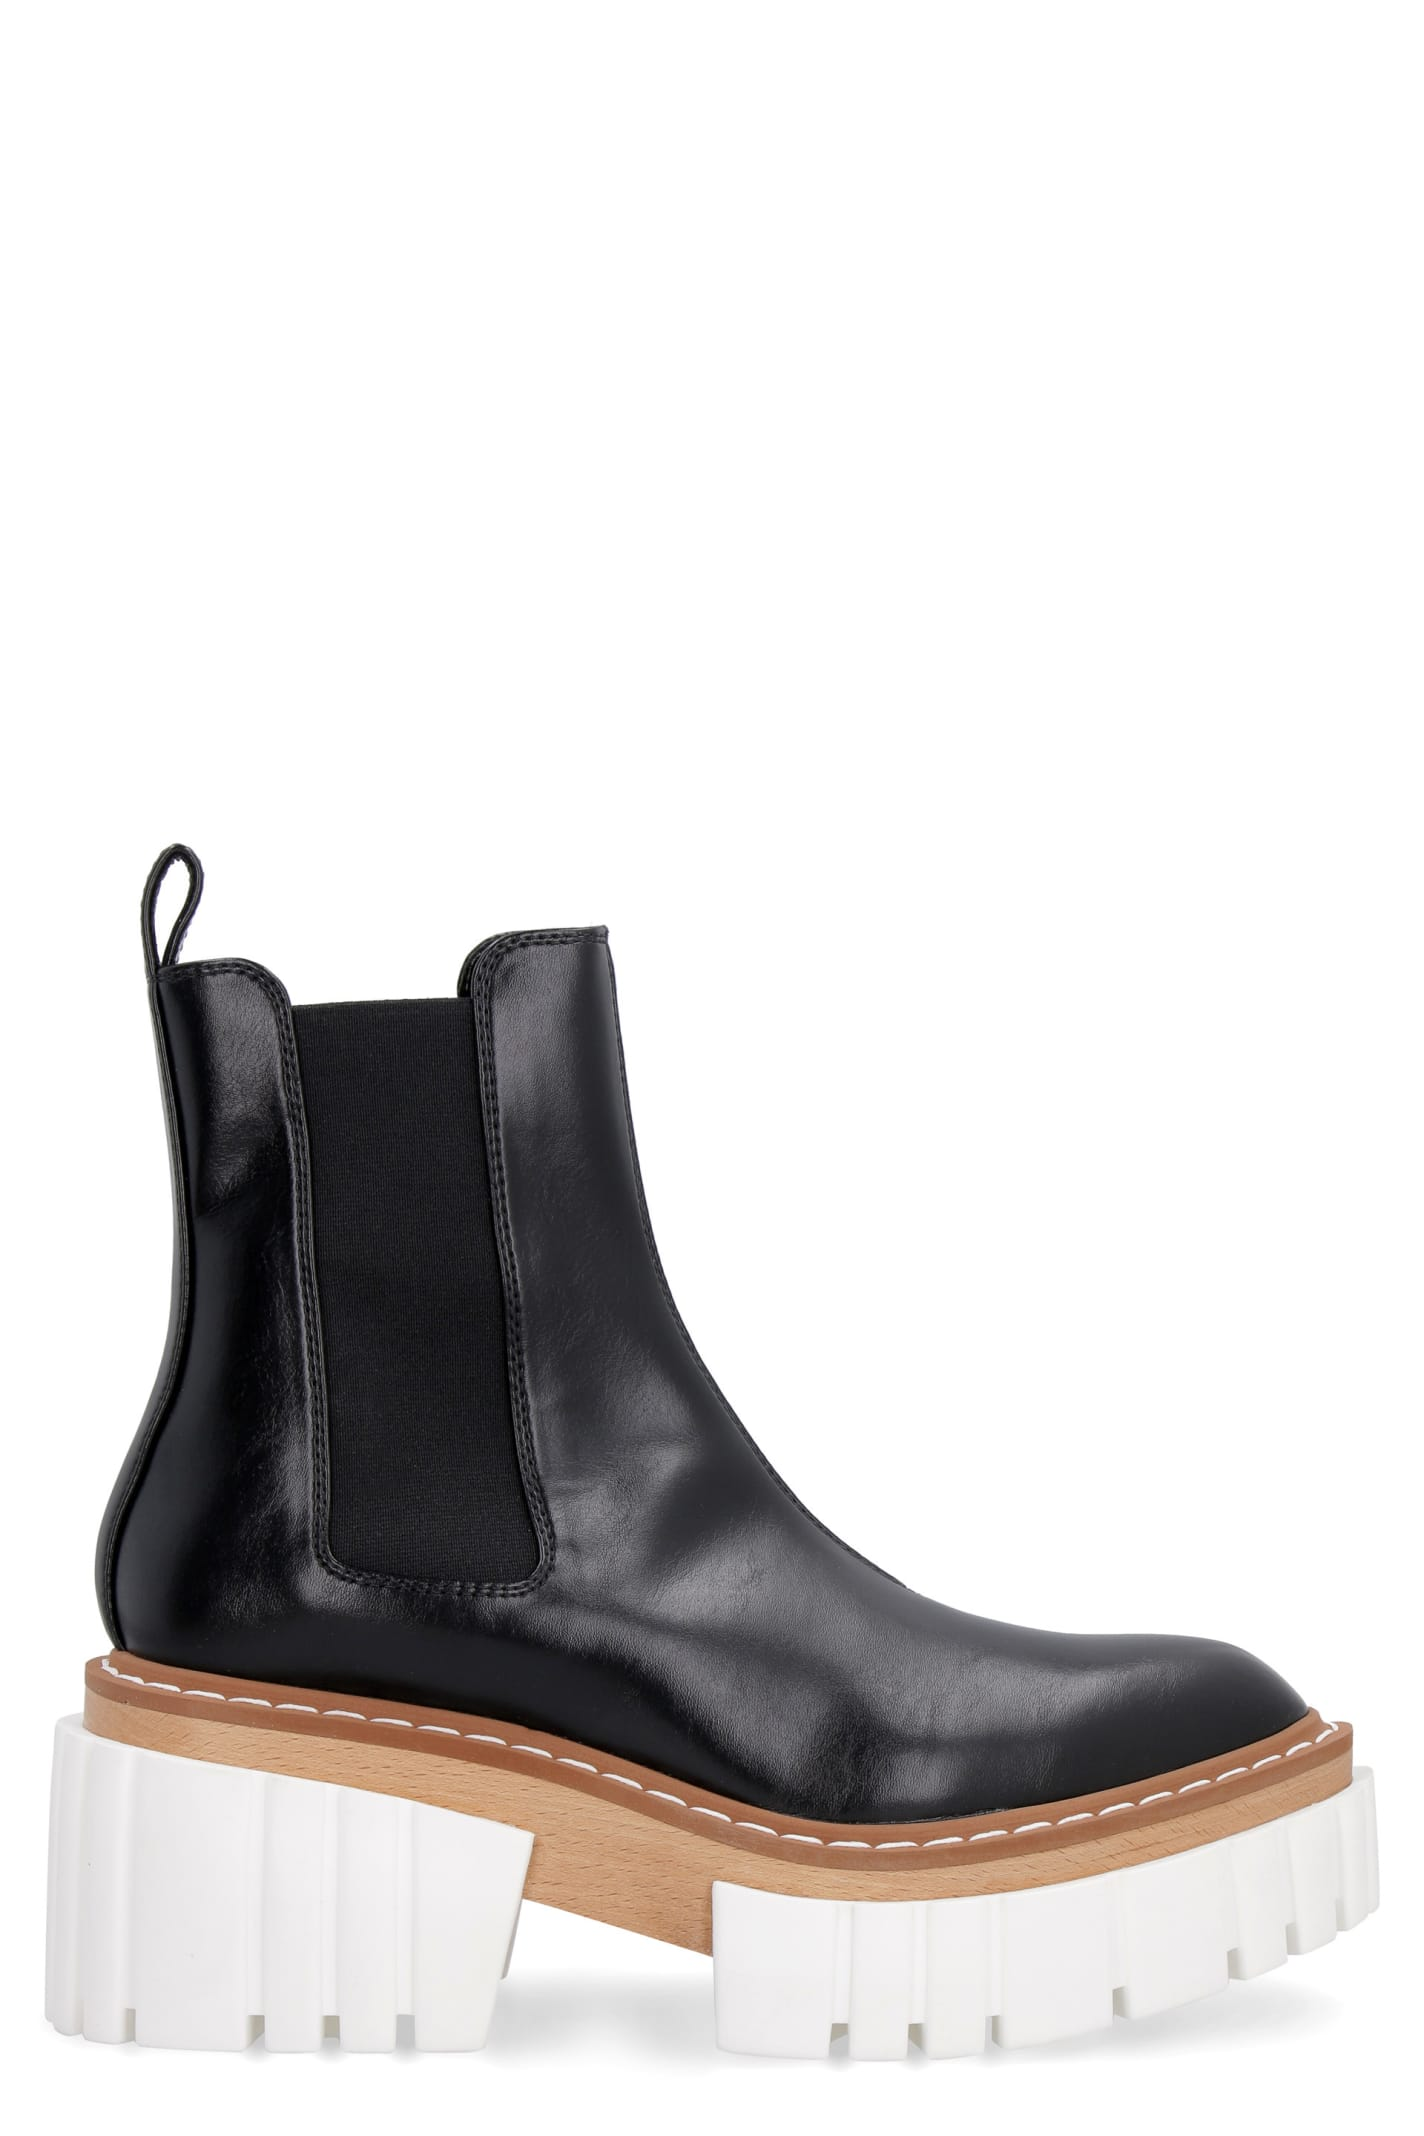 Stella Mccartney Platforms EMILIE WEDGE ANKLE BOOTS